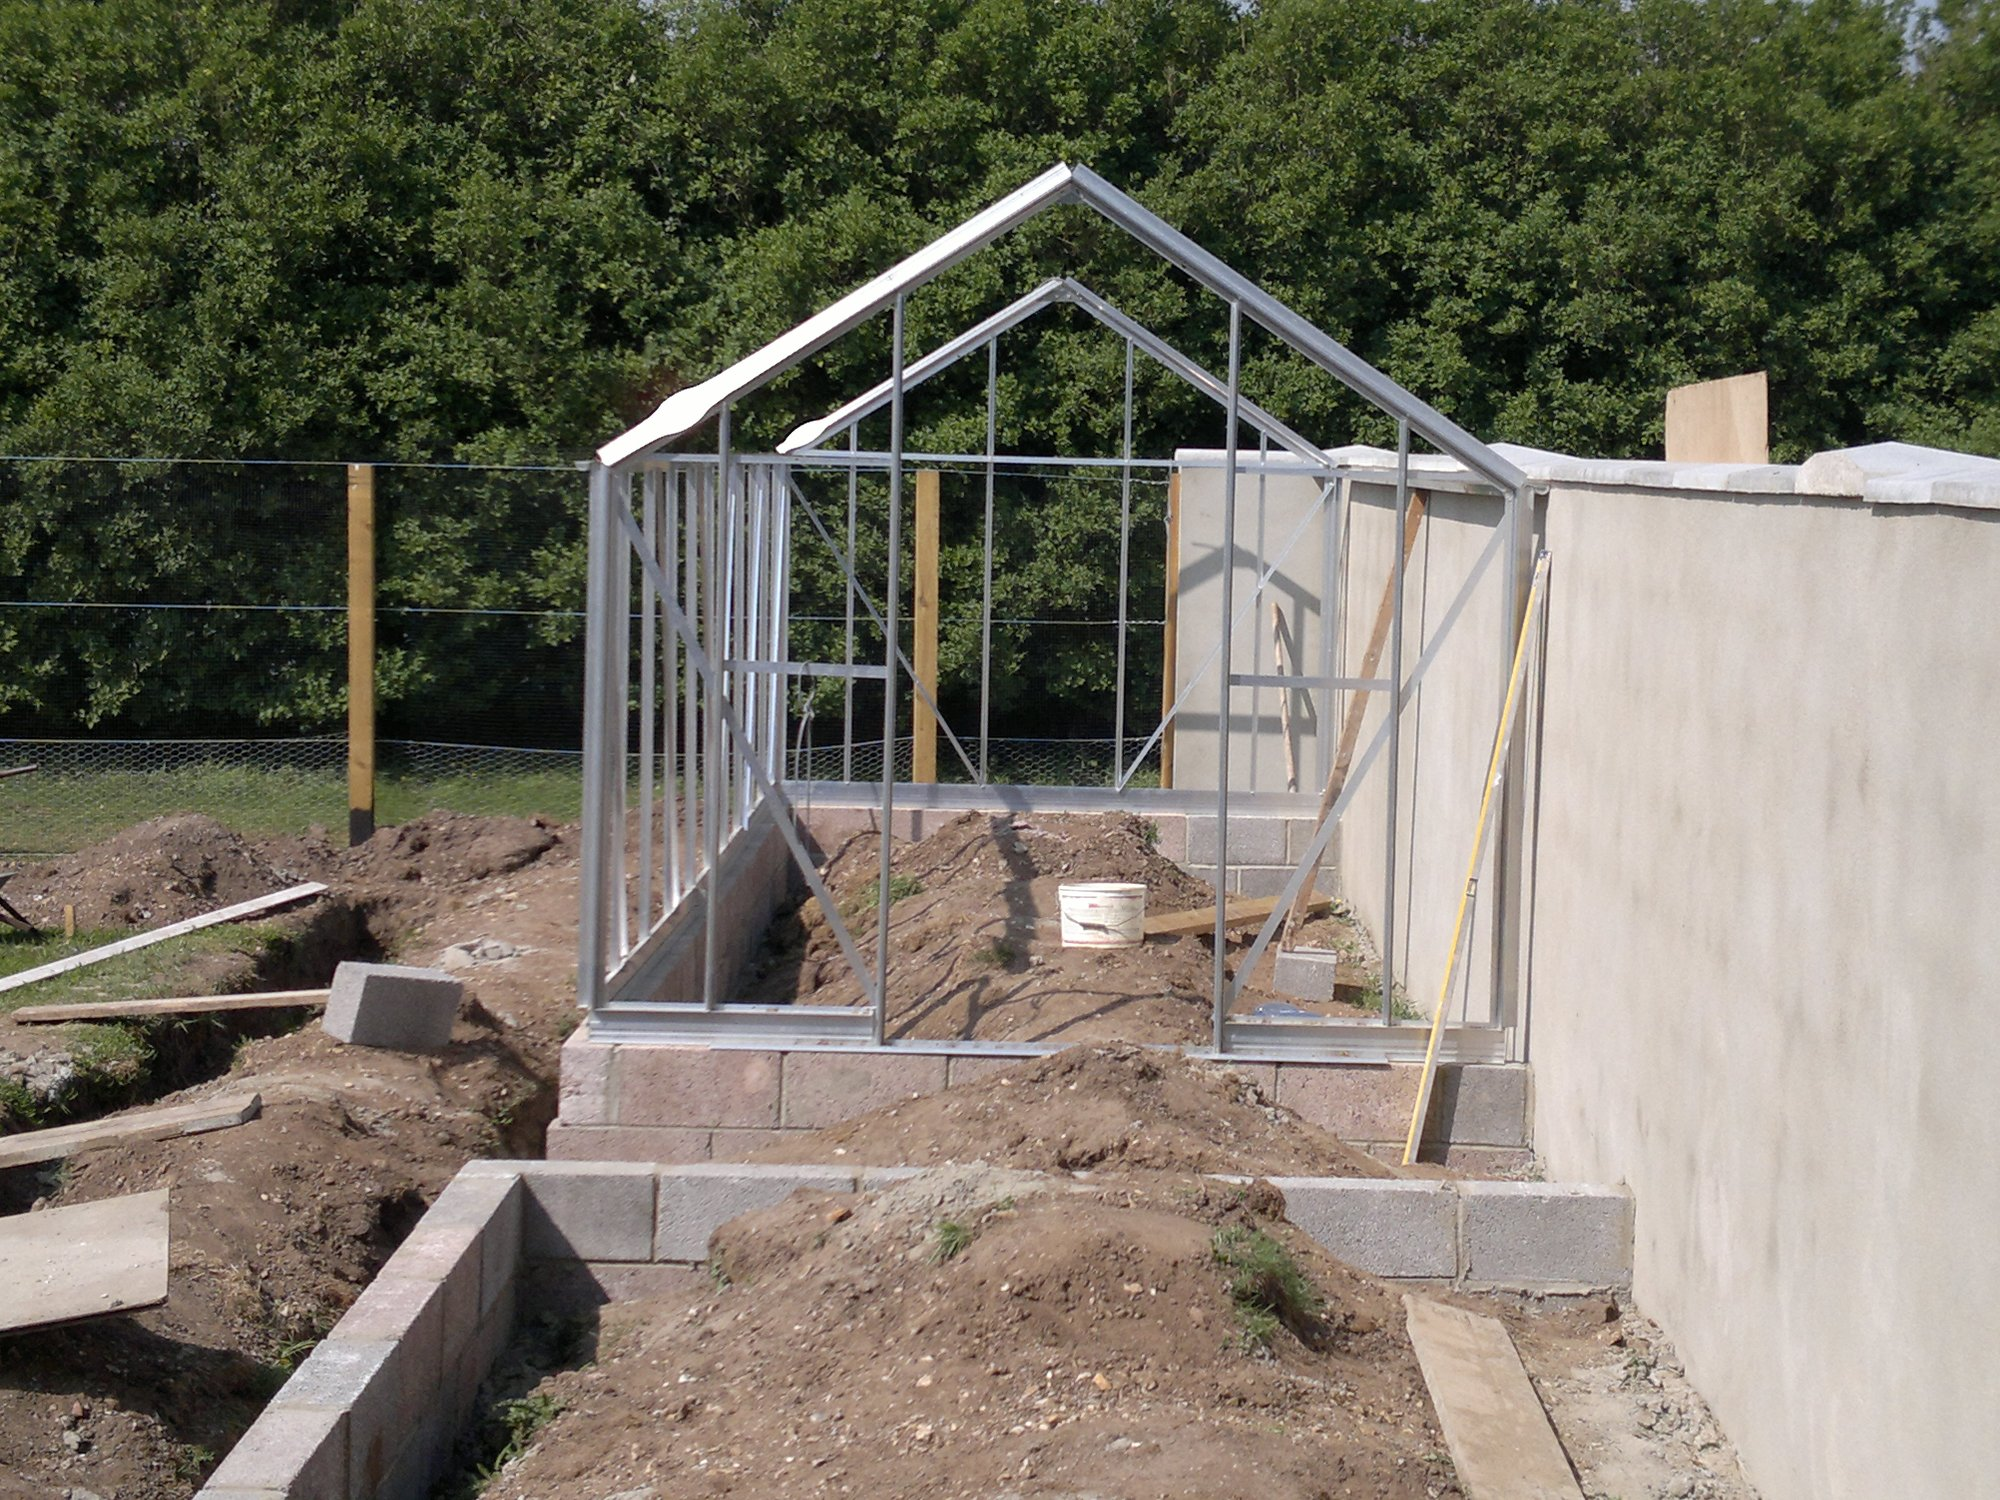 First of the main glasshouses secured to rear wall